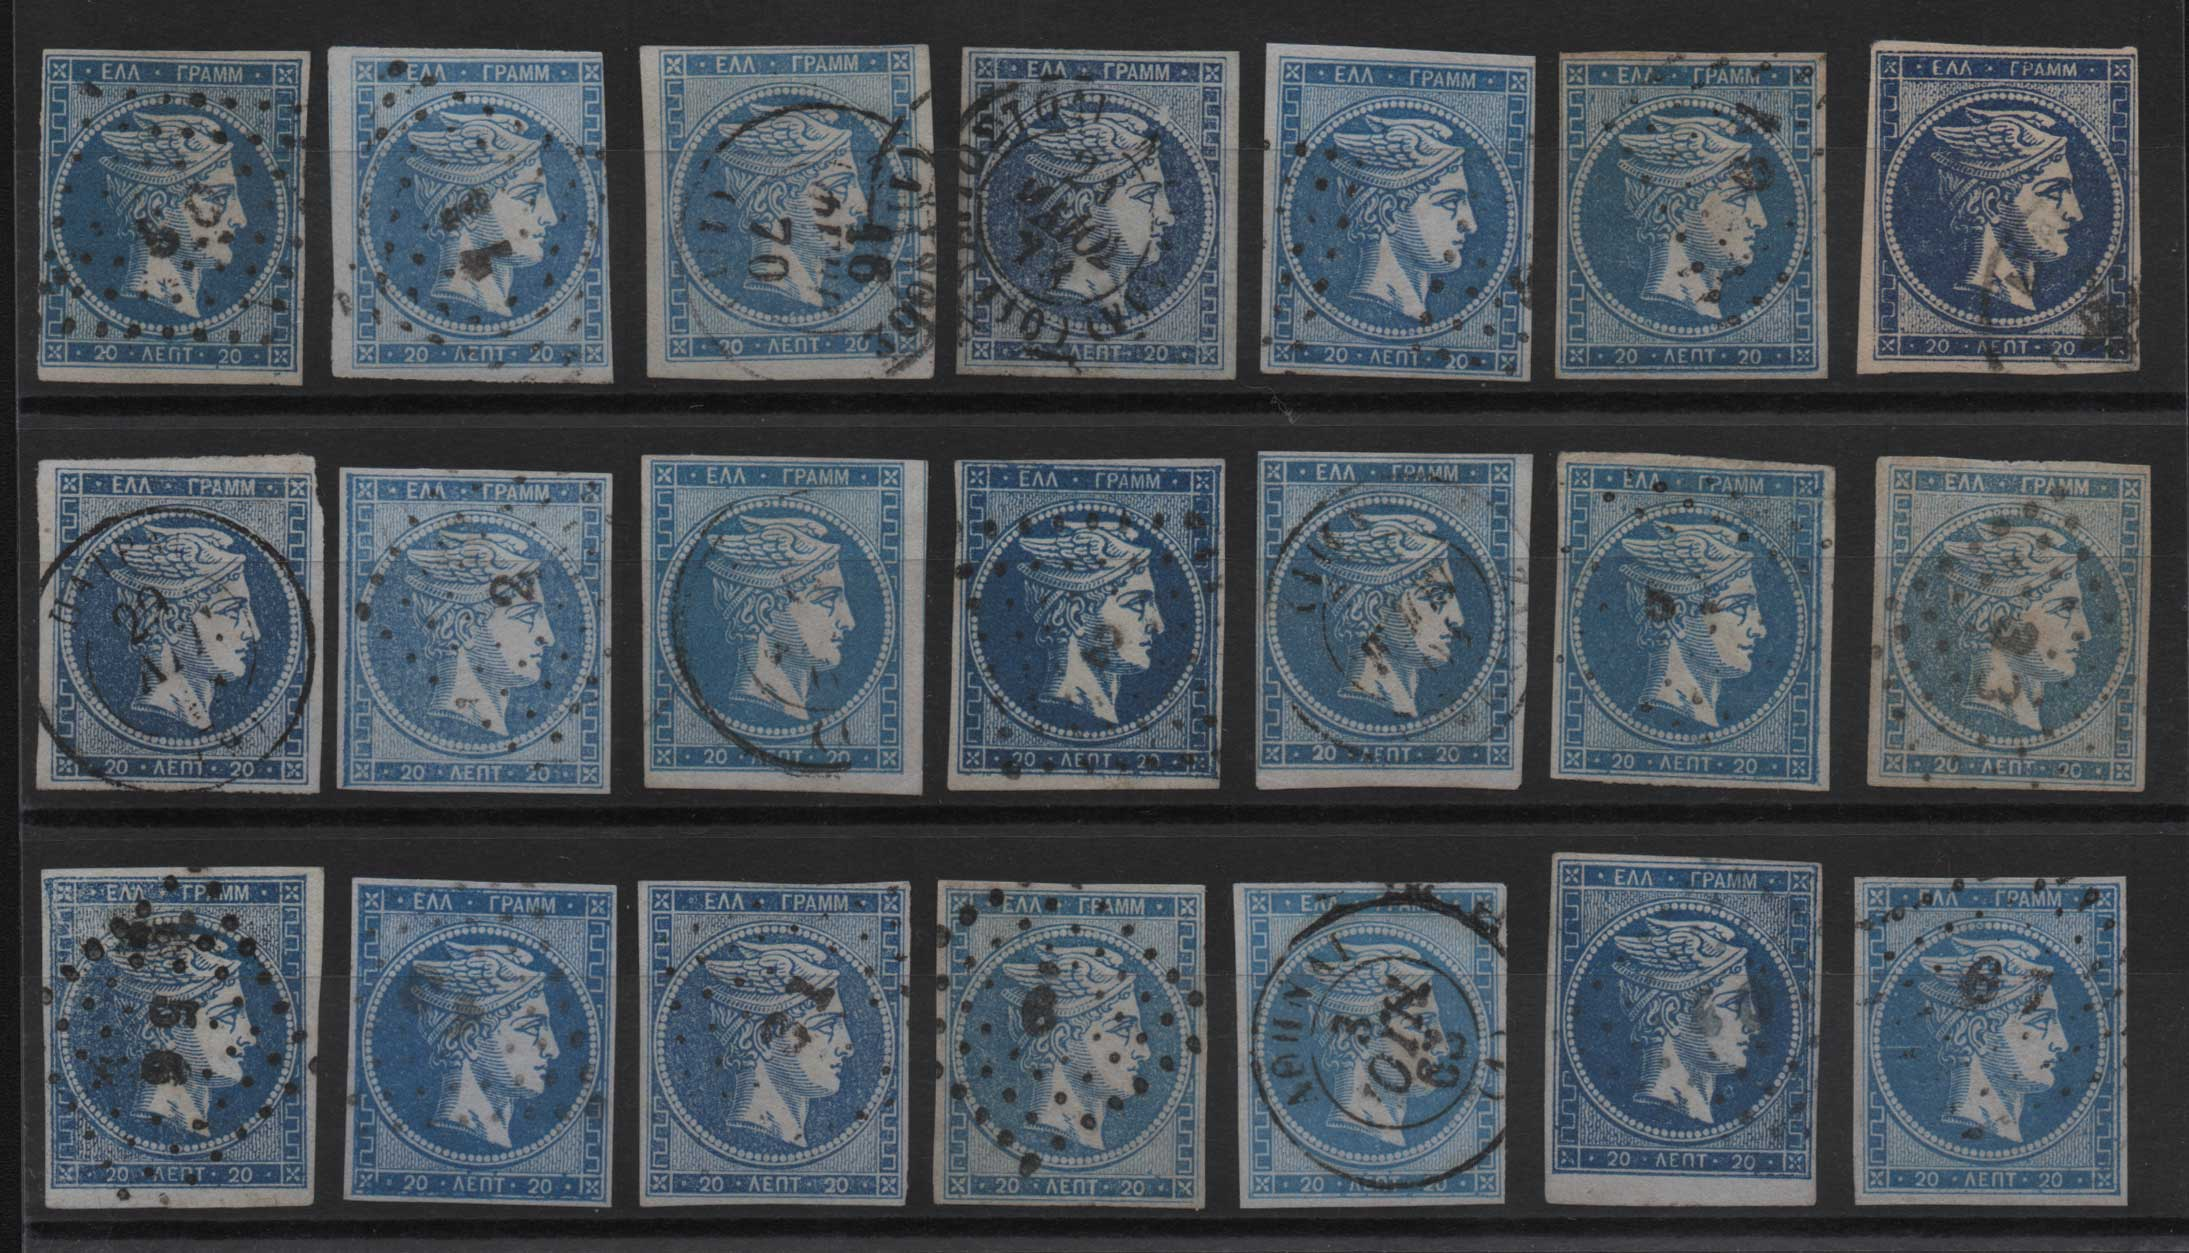 Lot 25 - -  LARGE HERMES HEAD large hermes head -  Athens Auctions Public Auction 74 General Stamp Sale